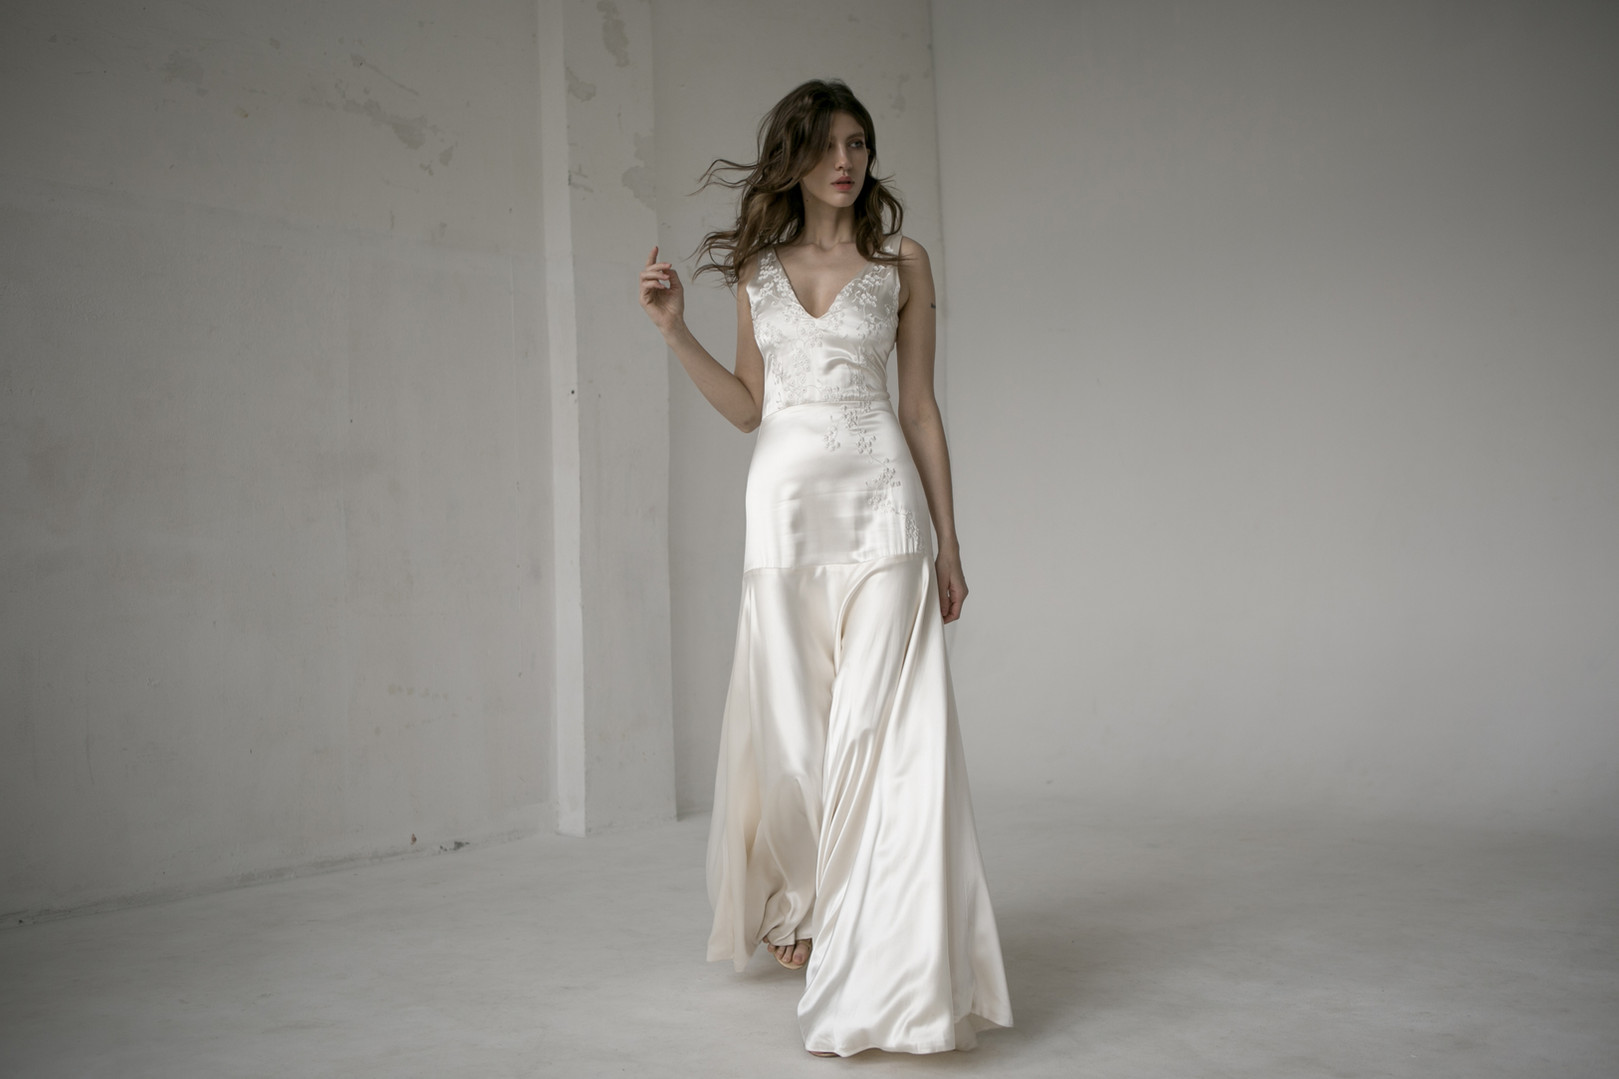 Piece-9--L'eto-Bridal-Seascape-Collectio